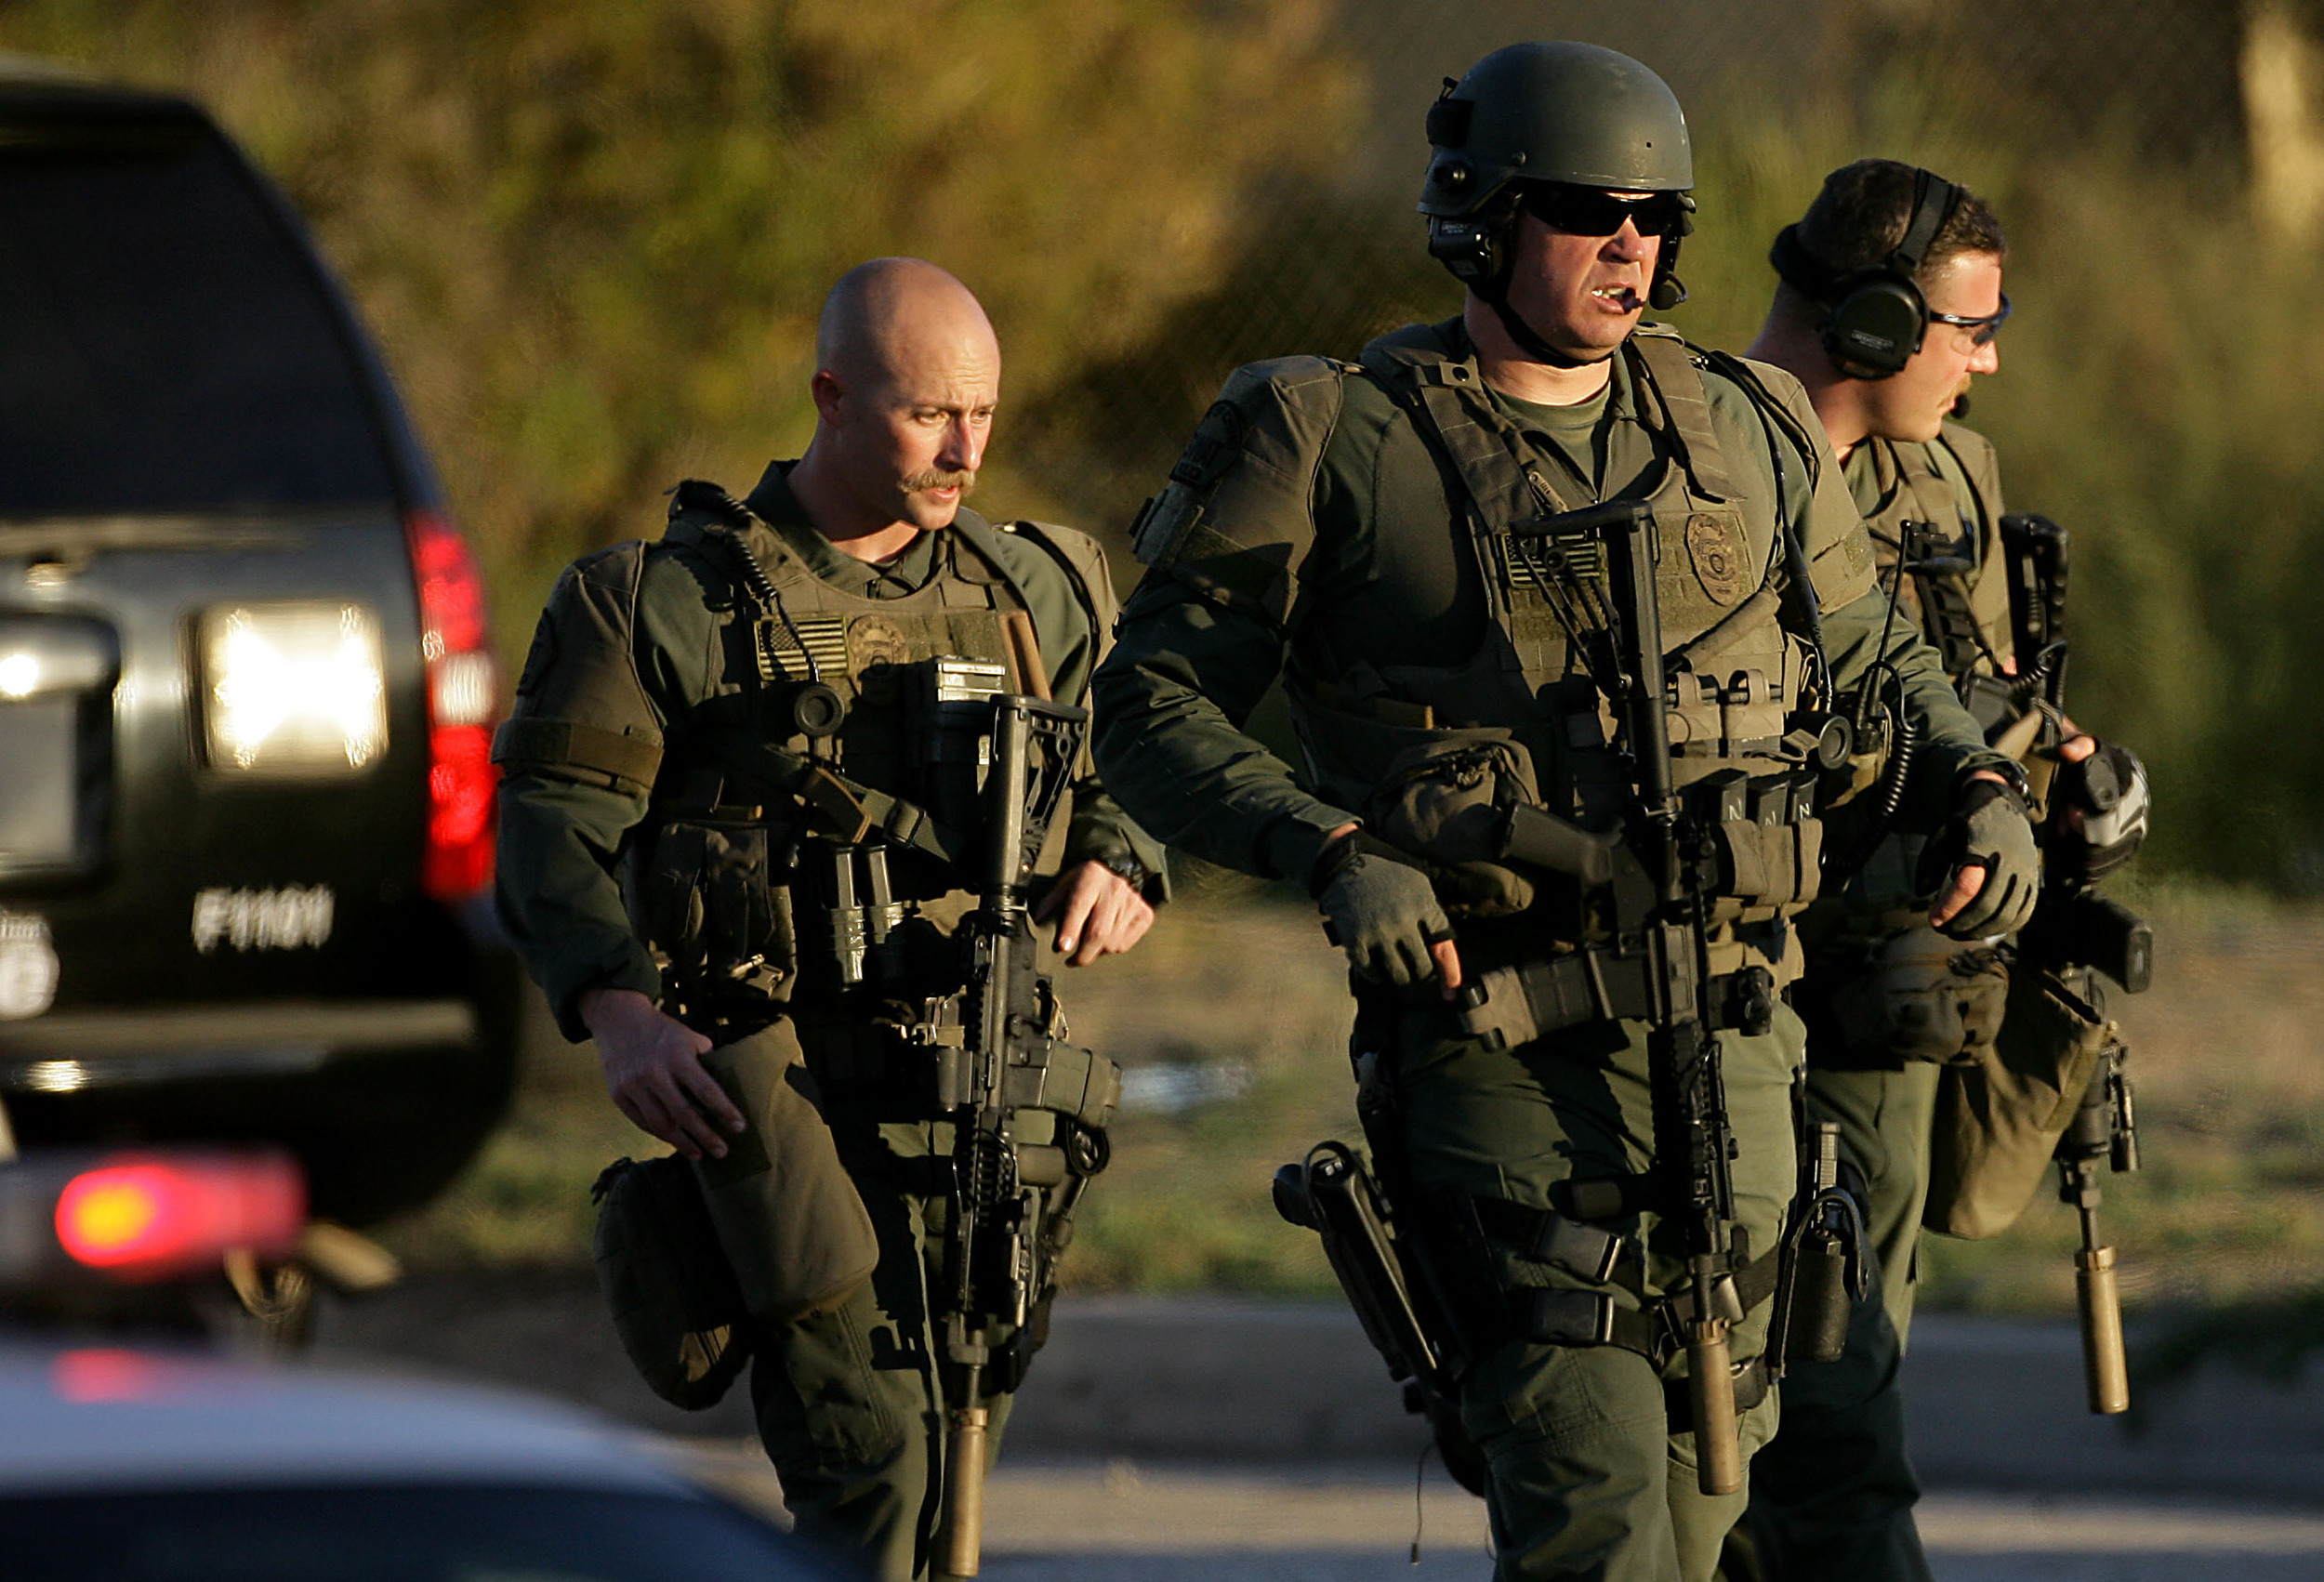 Police officers leave the scene as after one or two of the gunmen were shot and killed in a gun battle on San Bernardino Avenue east of Richardson Street after killing 14 people and shooting  14 more during a mass shooting in San Bernardino Wednesday, Dec. 2, 2015.